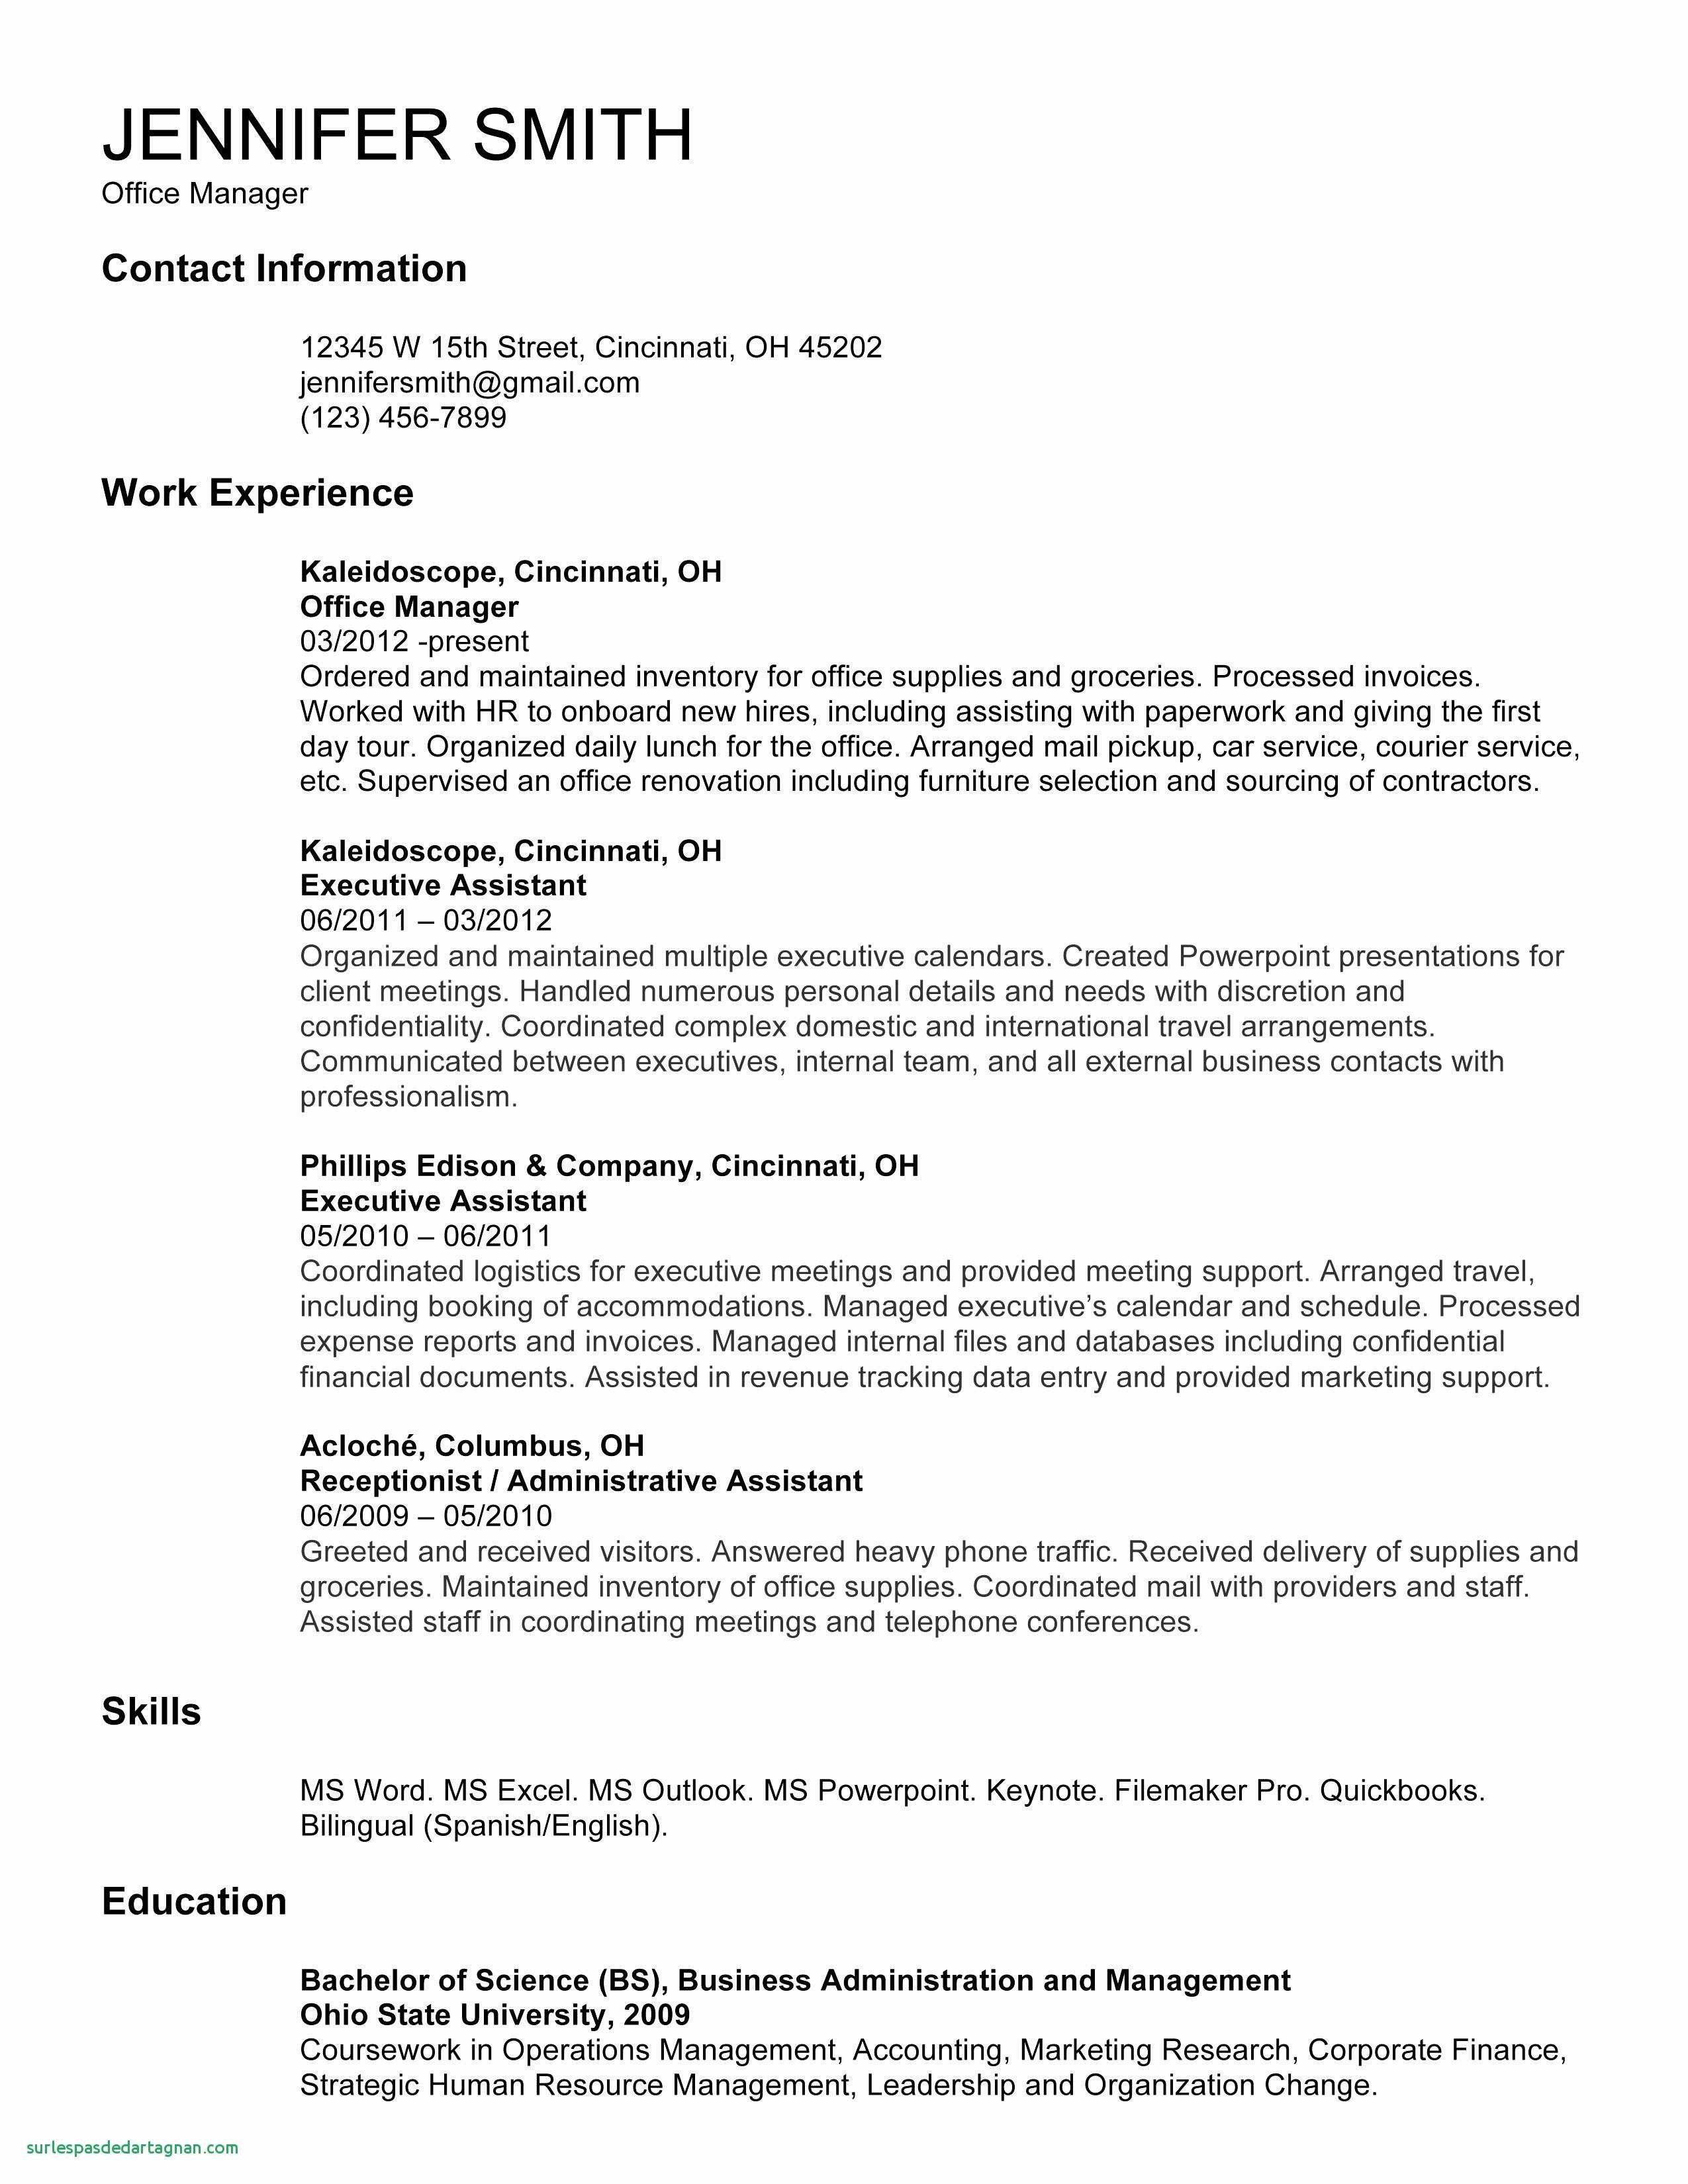 ee resume template example-Resume Template Download Free Unique ¢Ë†Å¡ Resume Template Download Free Luxury Empty Resume 0d Archives 14-q